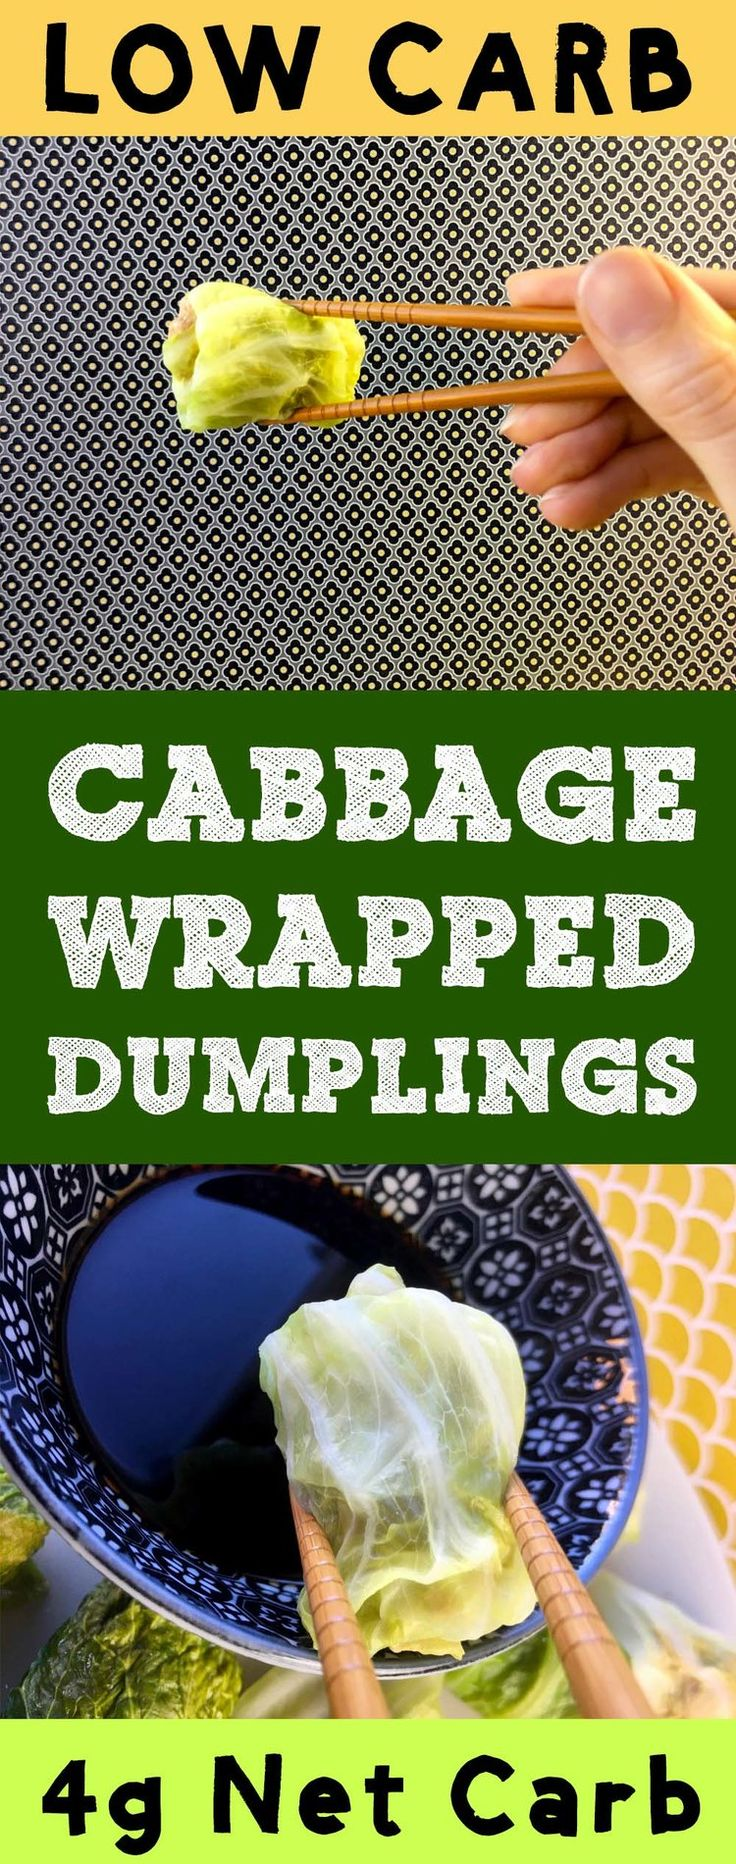 These low carb dim sum dumplings use cabbage for a wrapper, so they've only got 1g net carb per dumpling. They are Atkins, Banting, THM, Whole30, LCHF, Paleo, and Gluten Free.